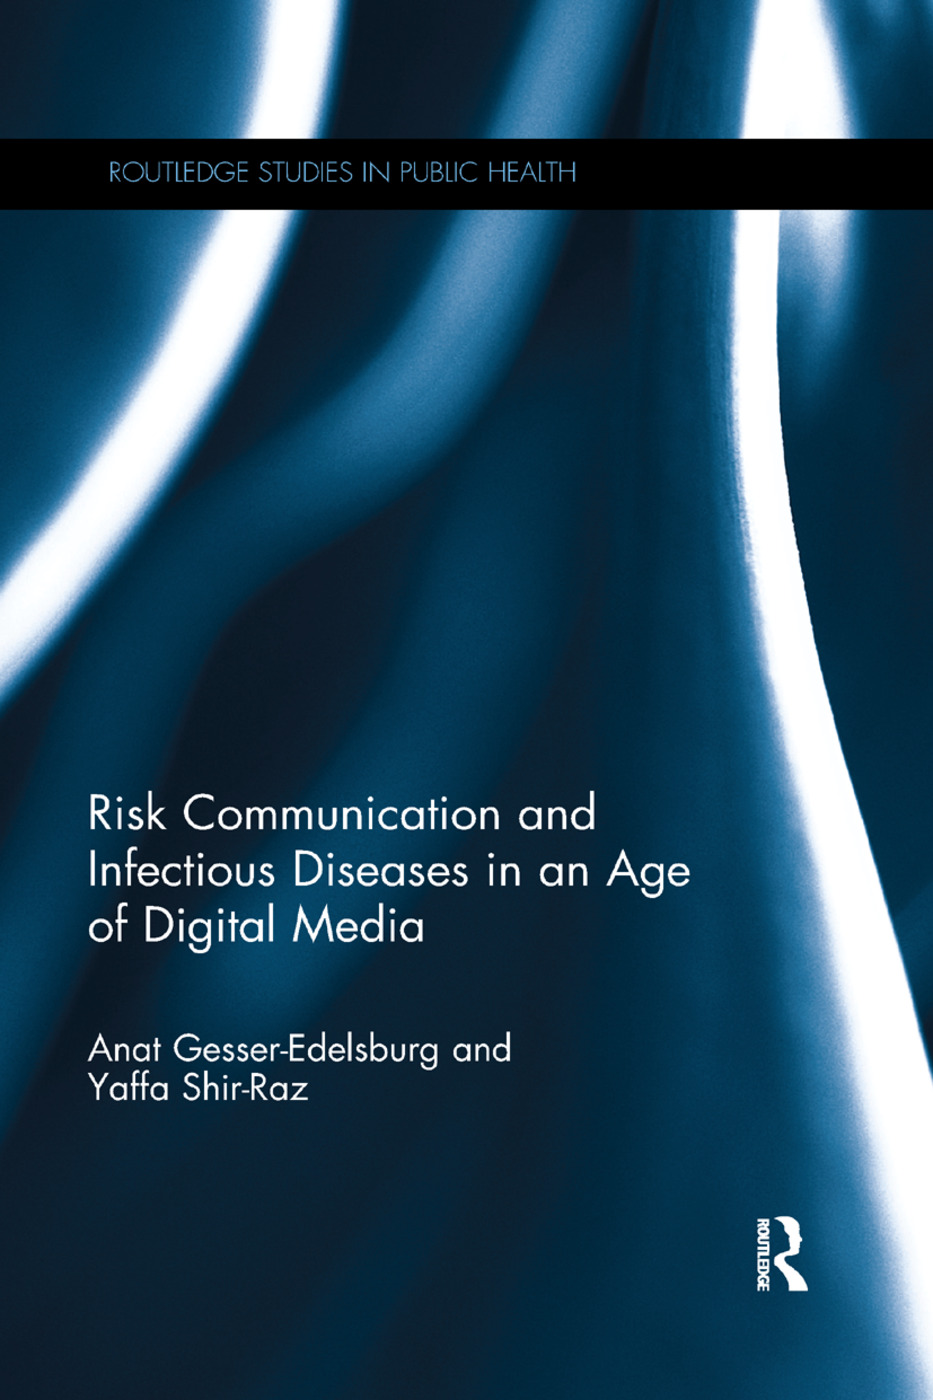 Risk Communication and Infectious Diseases in an Age of Digital Media